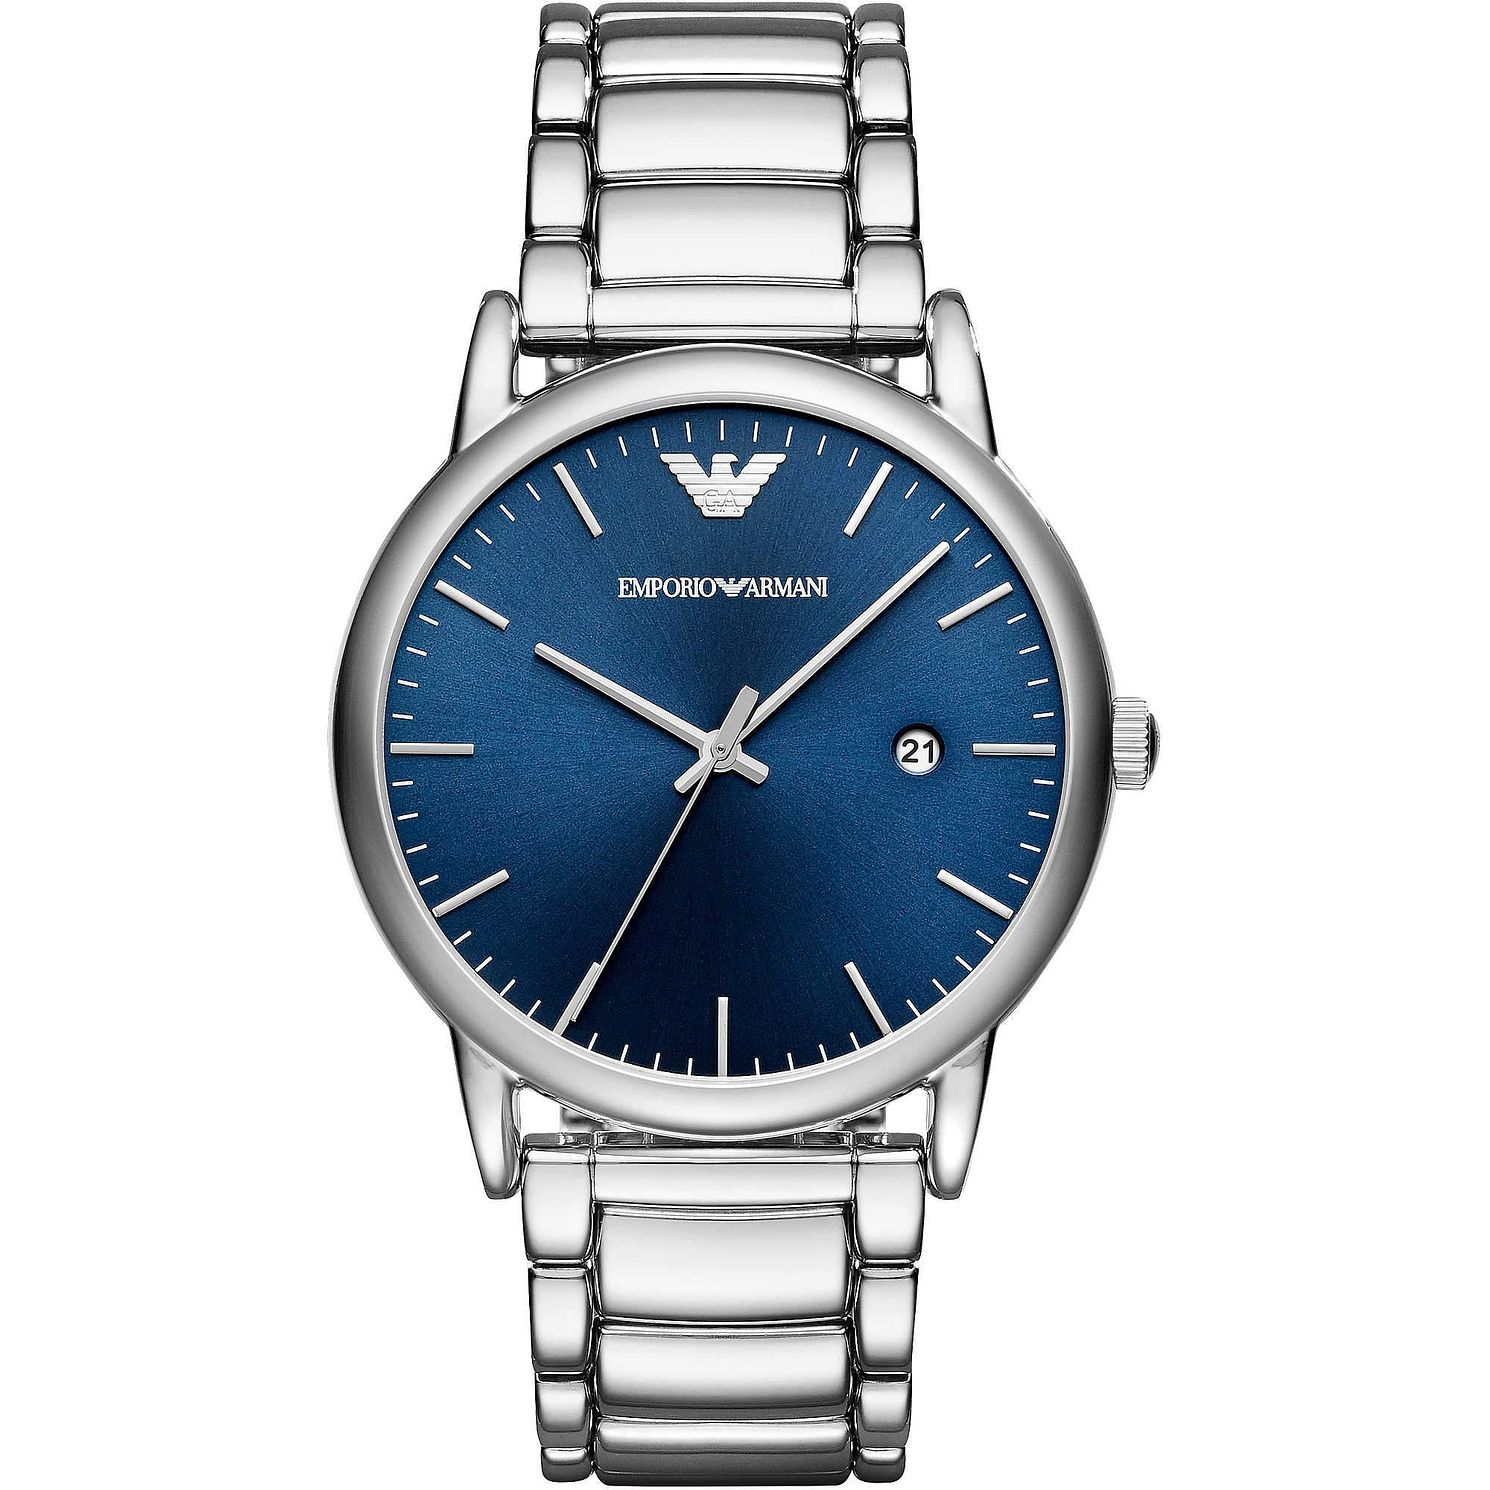 Emporio Armani Men's Stainless Steel Bracelet Watch - Product number 1075519